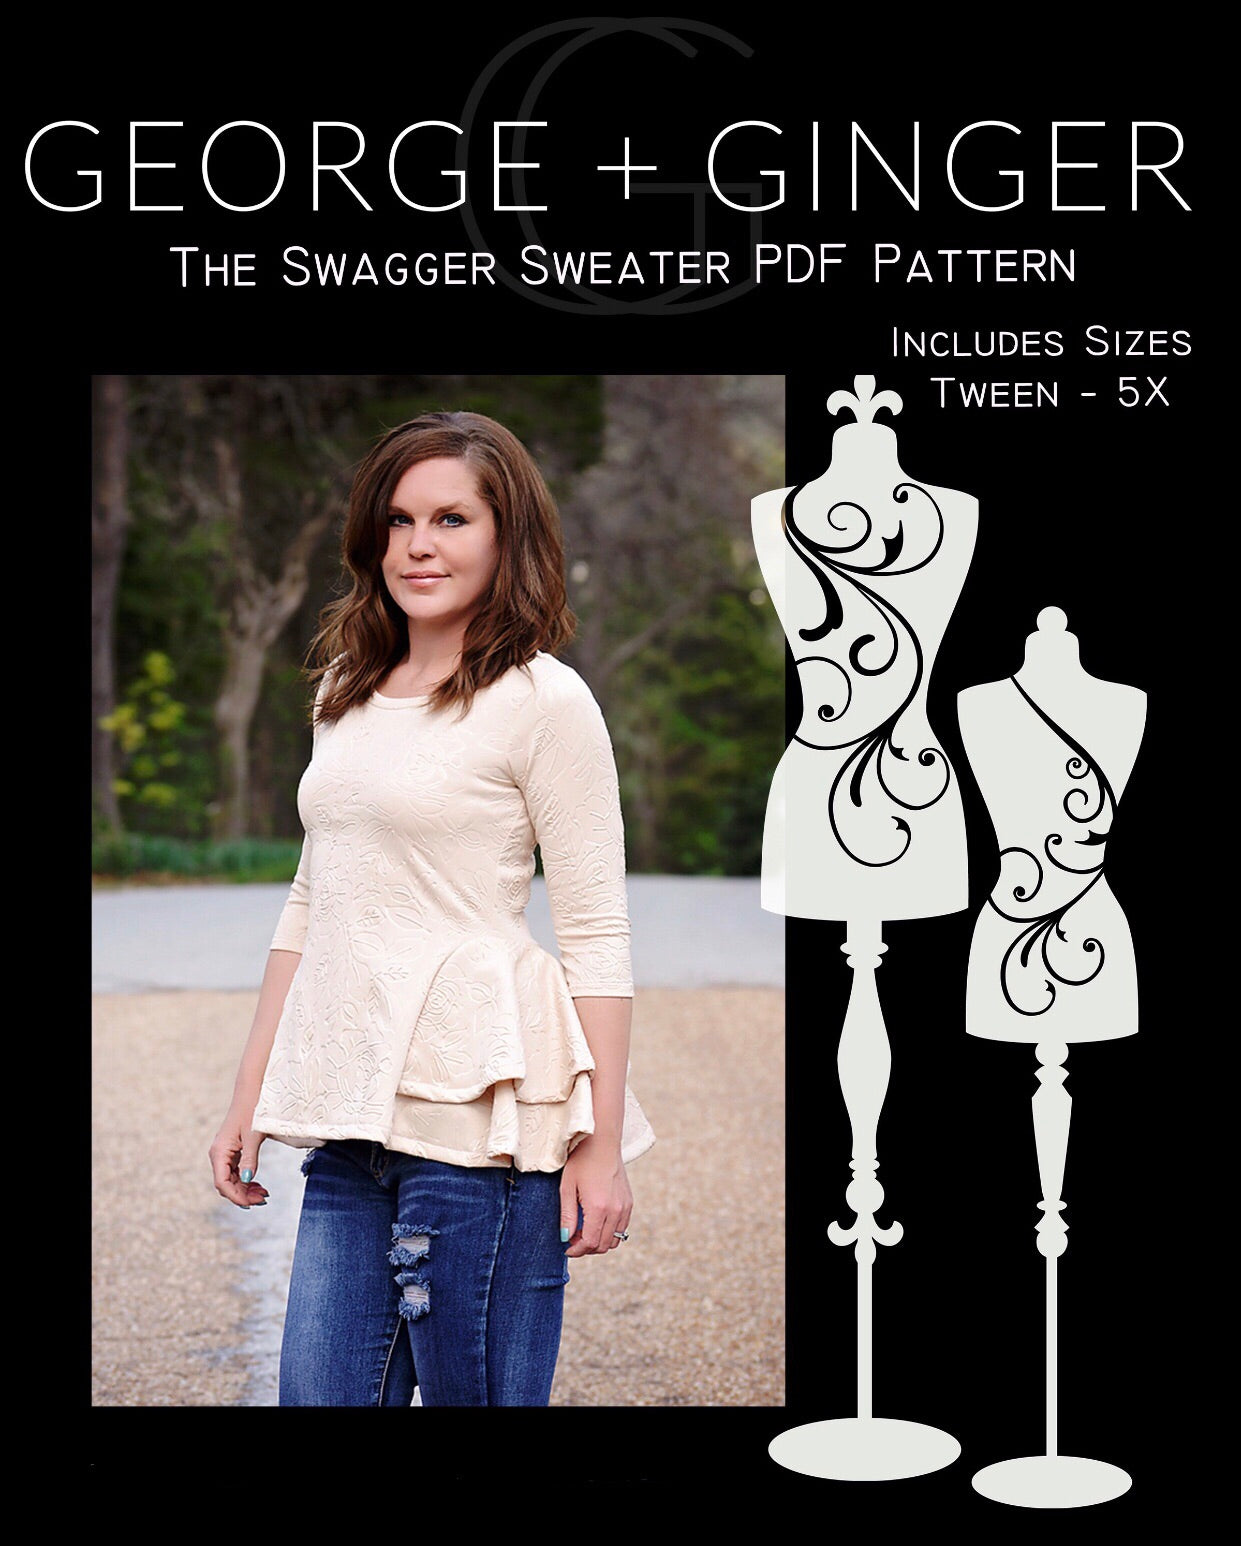 The Swagger Sweater PDF Sewing Pattern